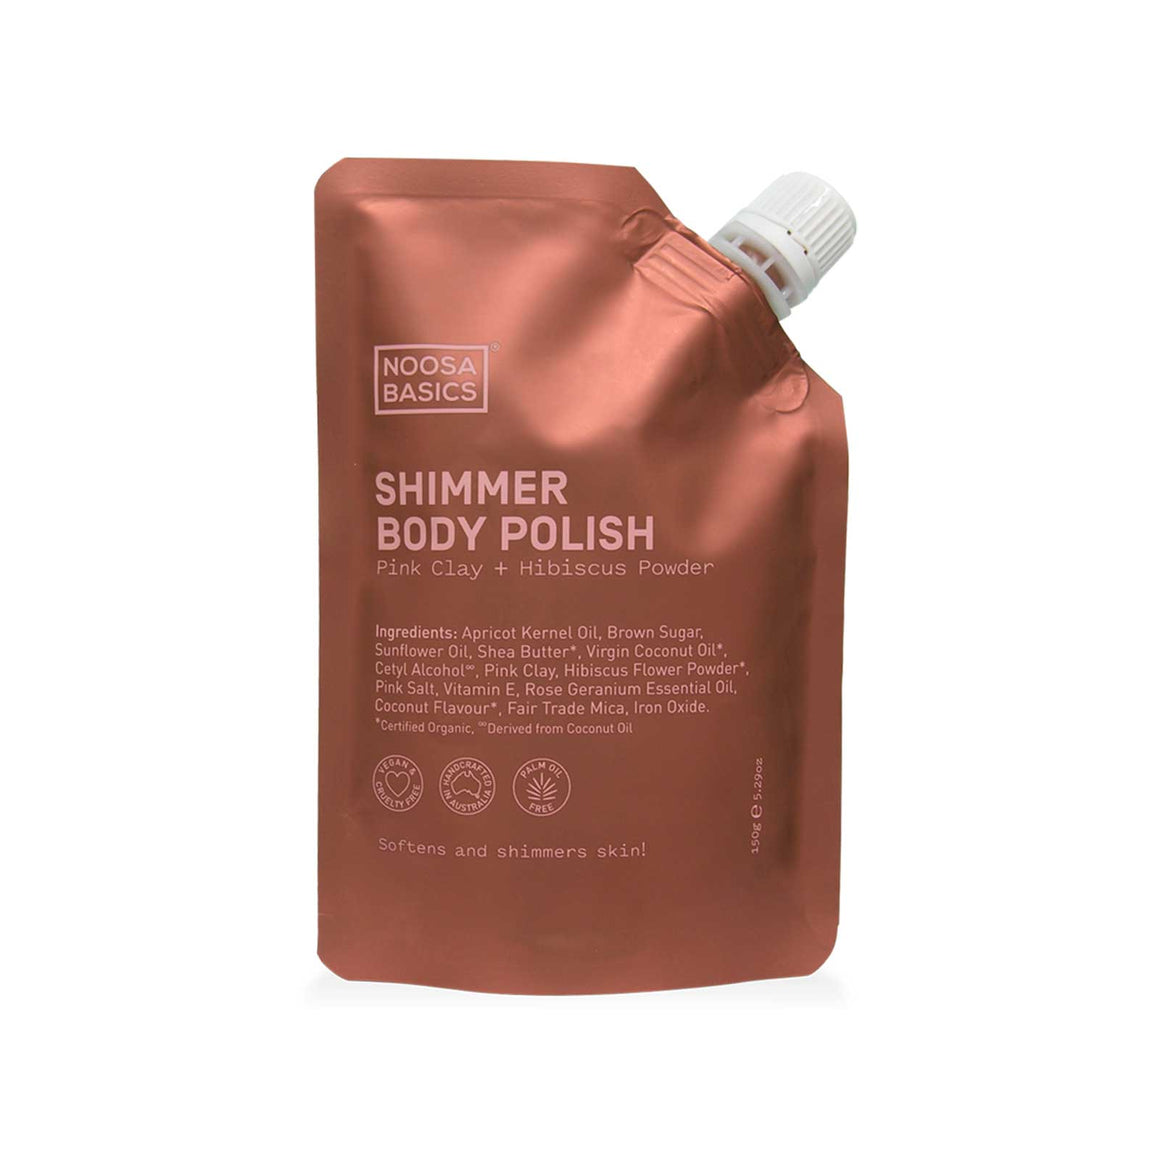 Noosa Basics SHIMMER BODY POLISH Pink Clay + Hibiscus Powder